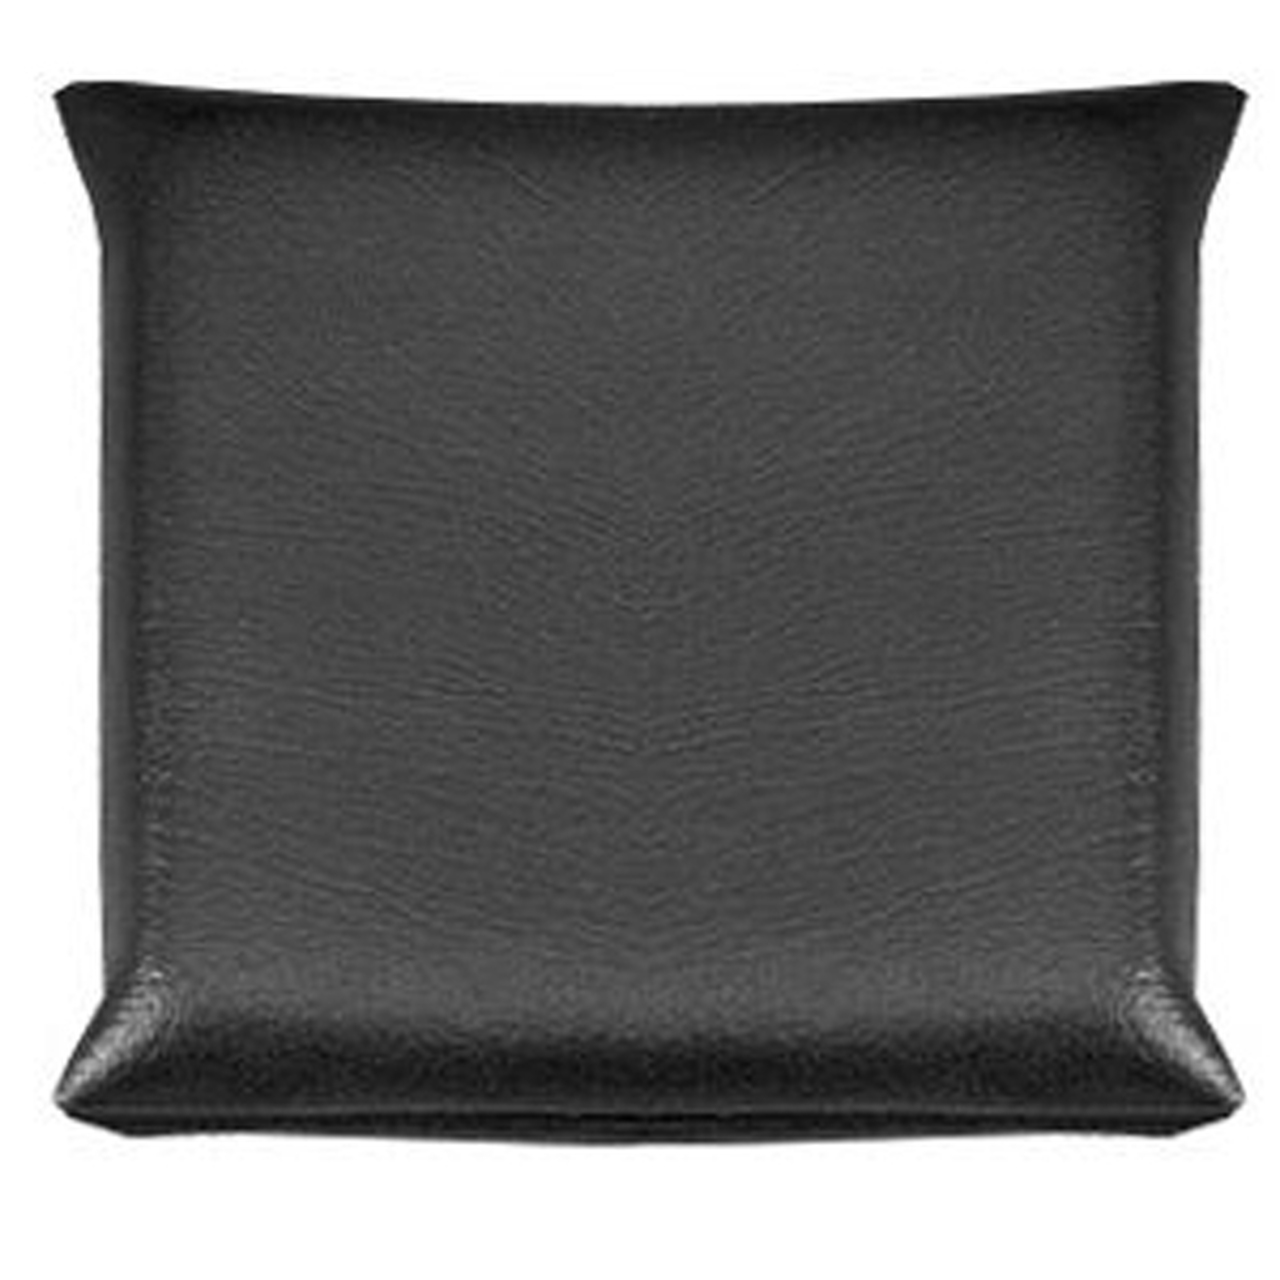 Alignment Pillow, Standard